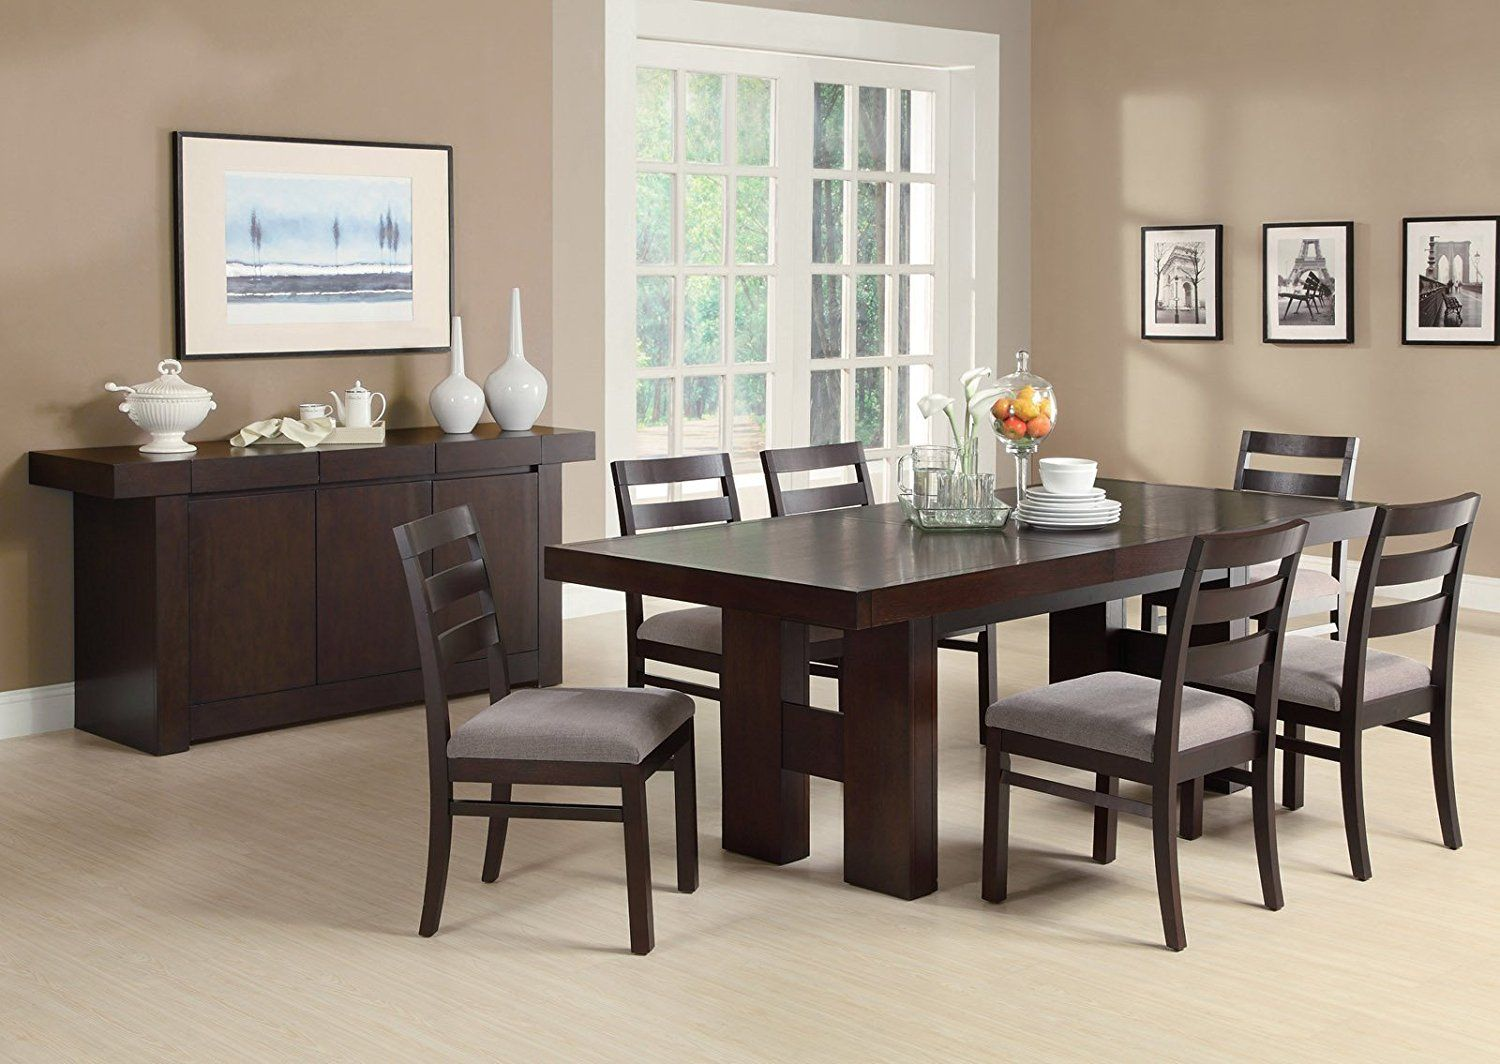 Amazon  Dabny 7Pc Dining Table Setcoaster  Table Stunning Coaster Dining Room Furniture Design Inspiration